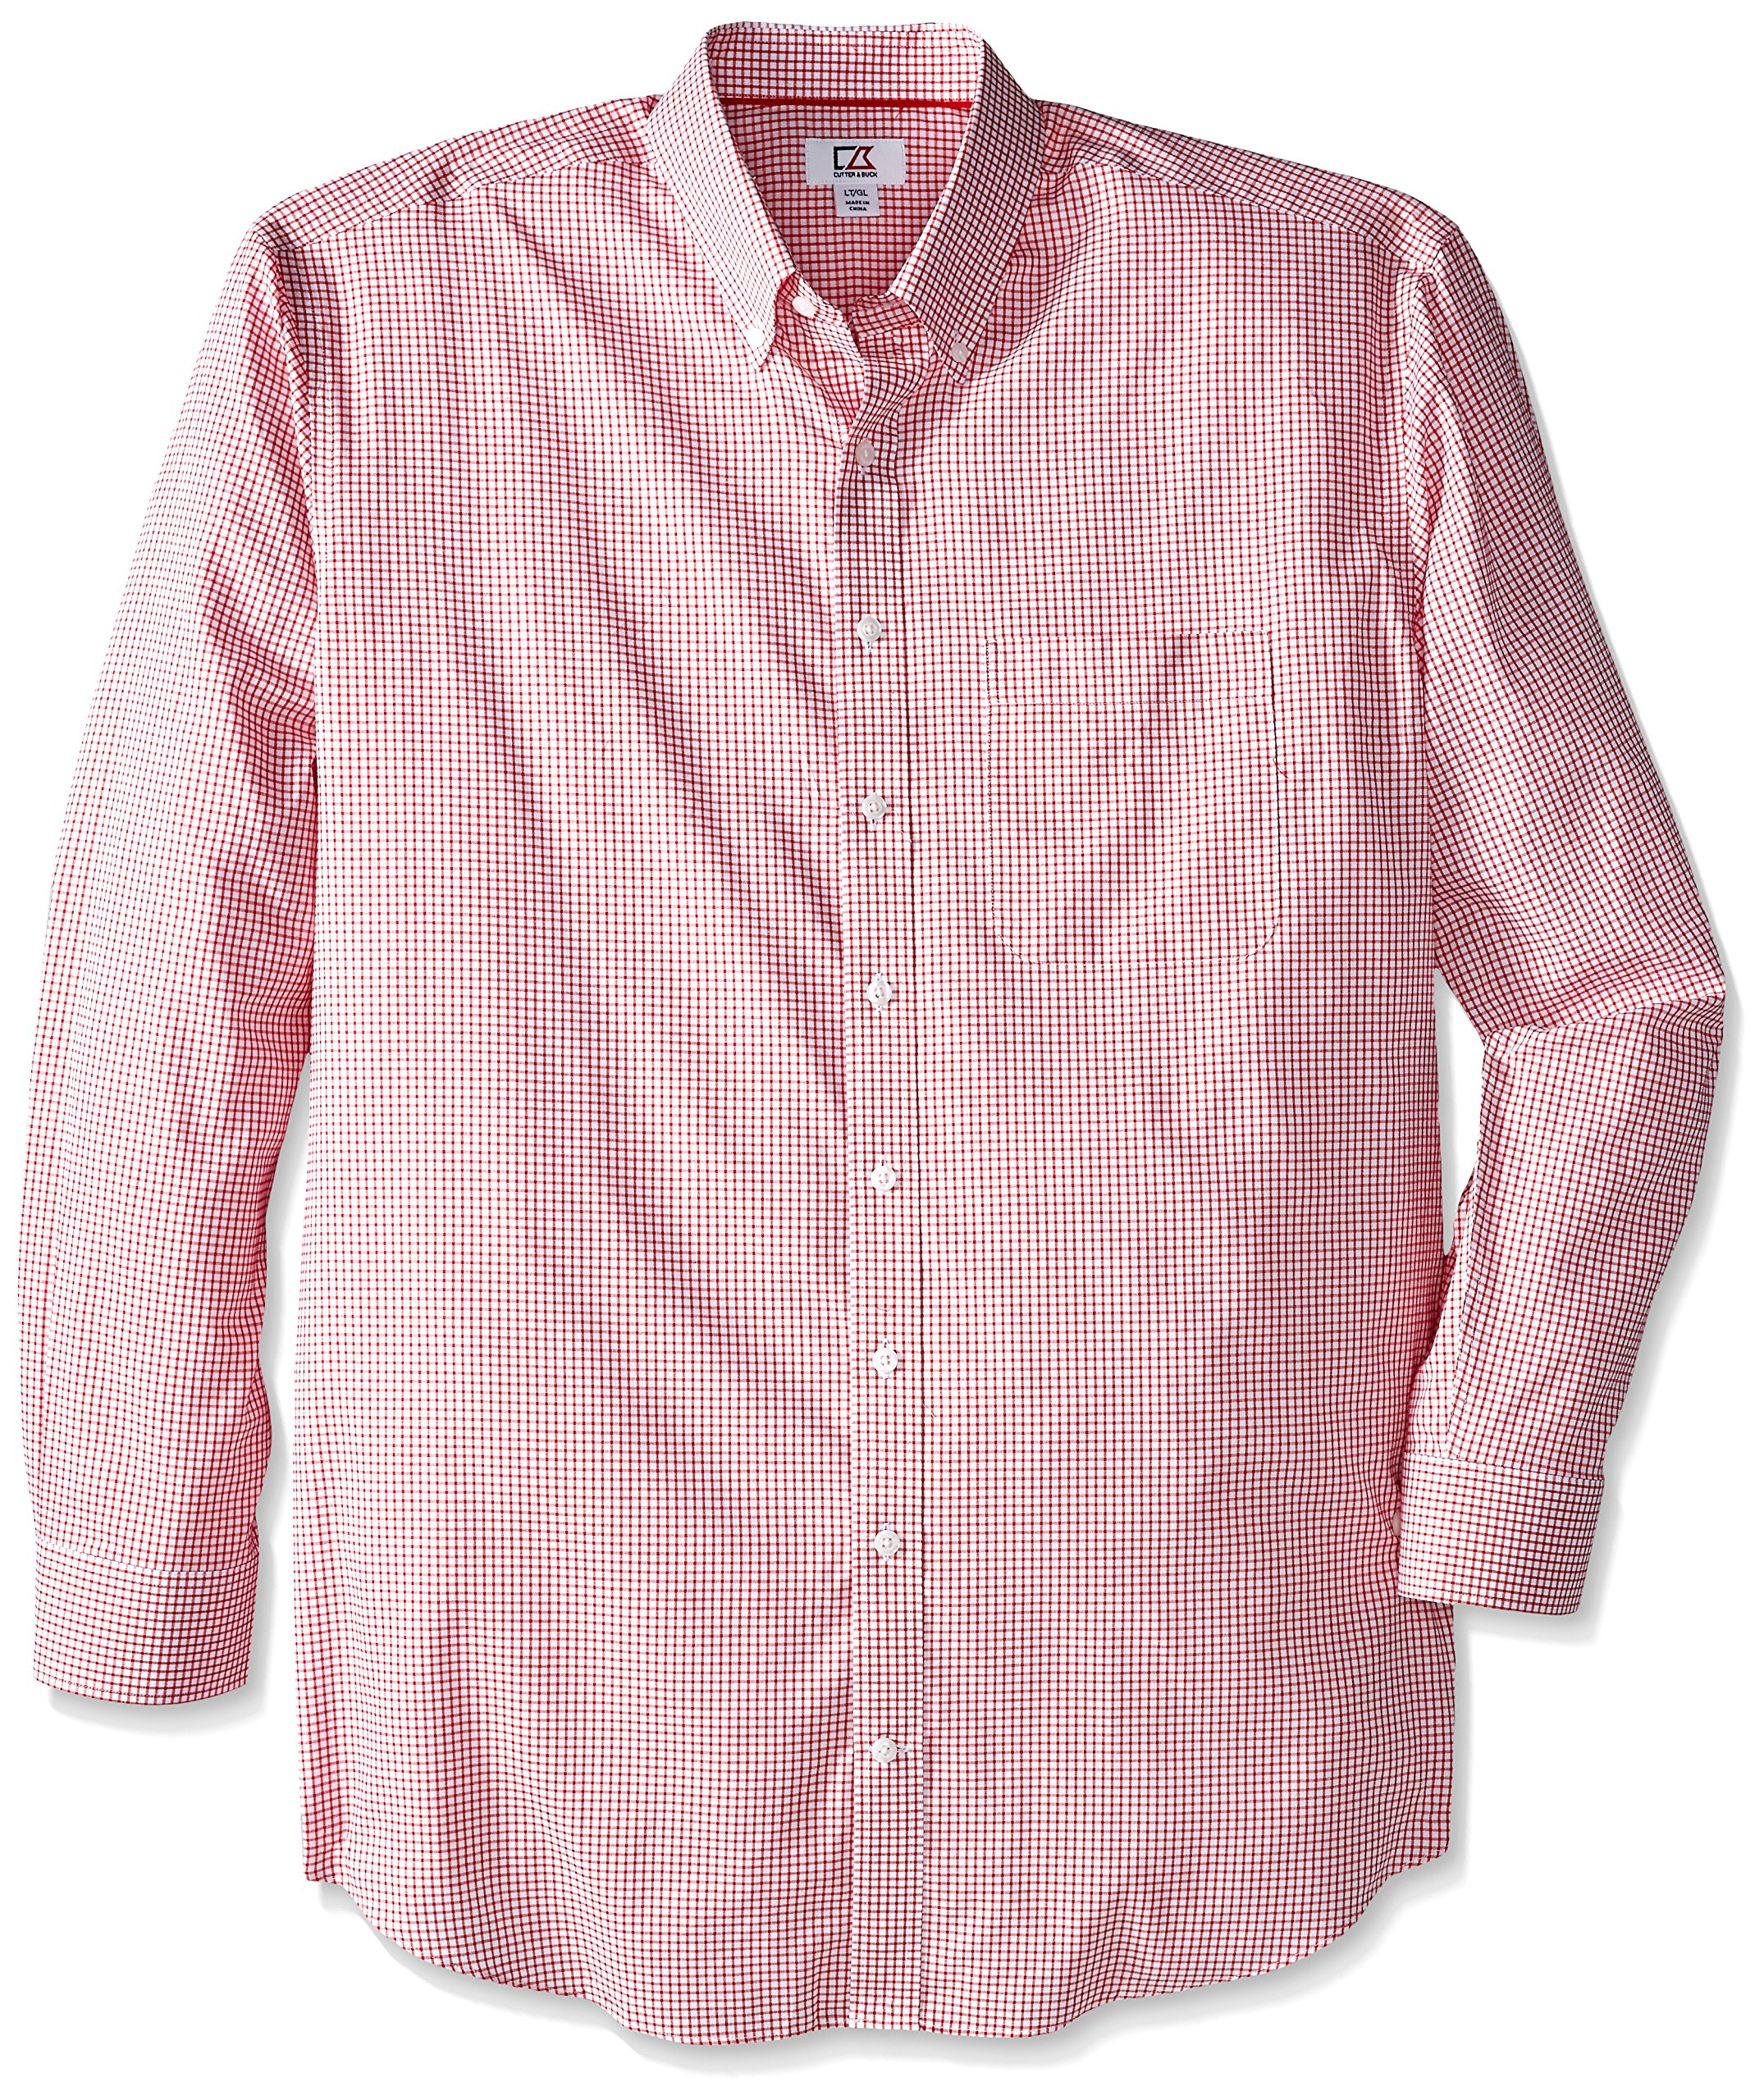 Cutter & Buck Men's Big-Tall Long Sleeve Epic Easy Care Tattersall Shirt, Red, X-Large/Tall